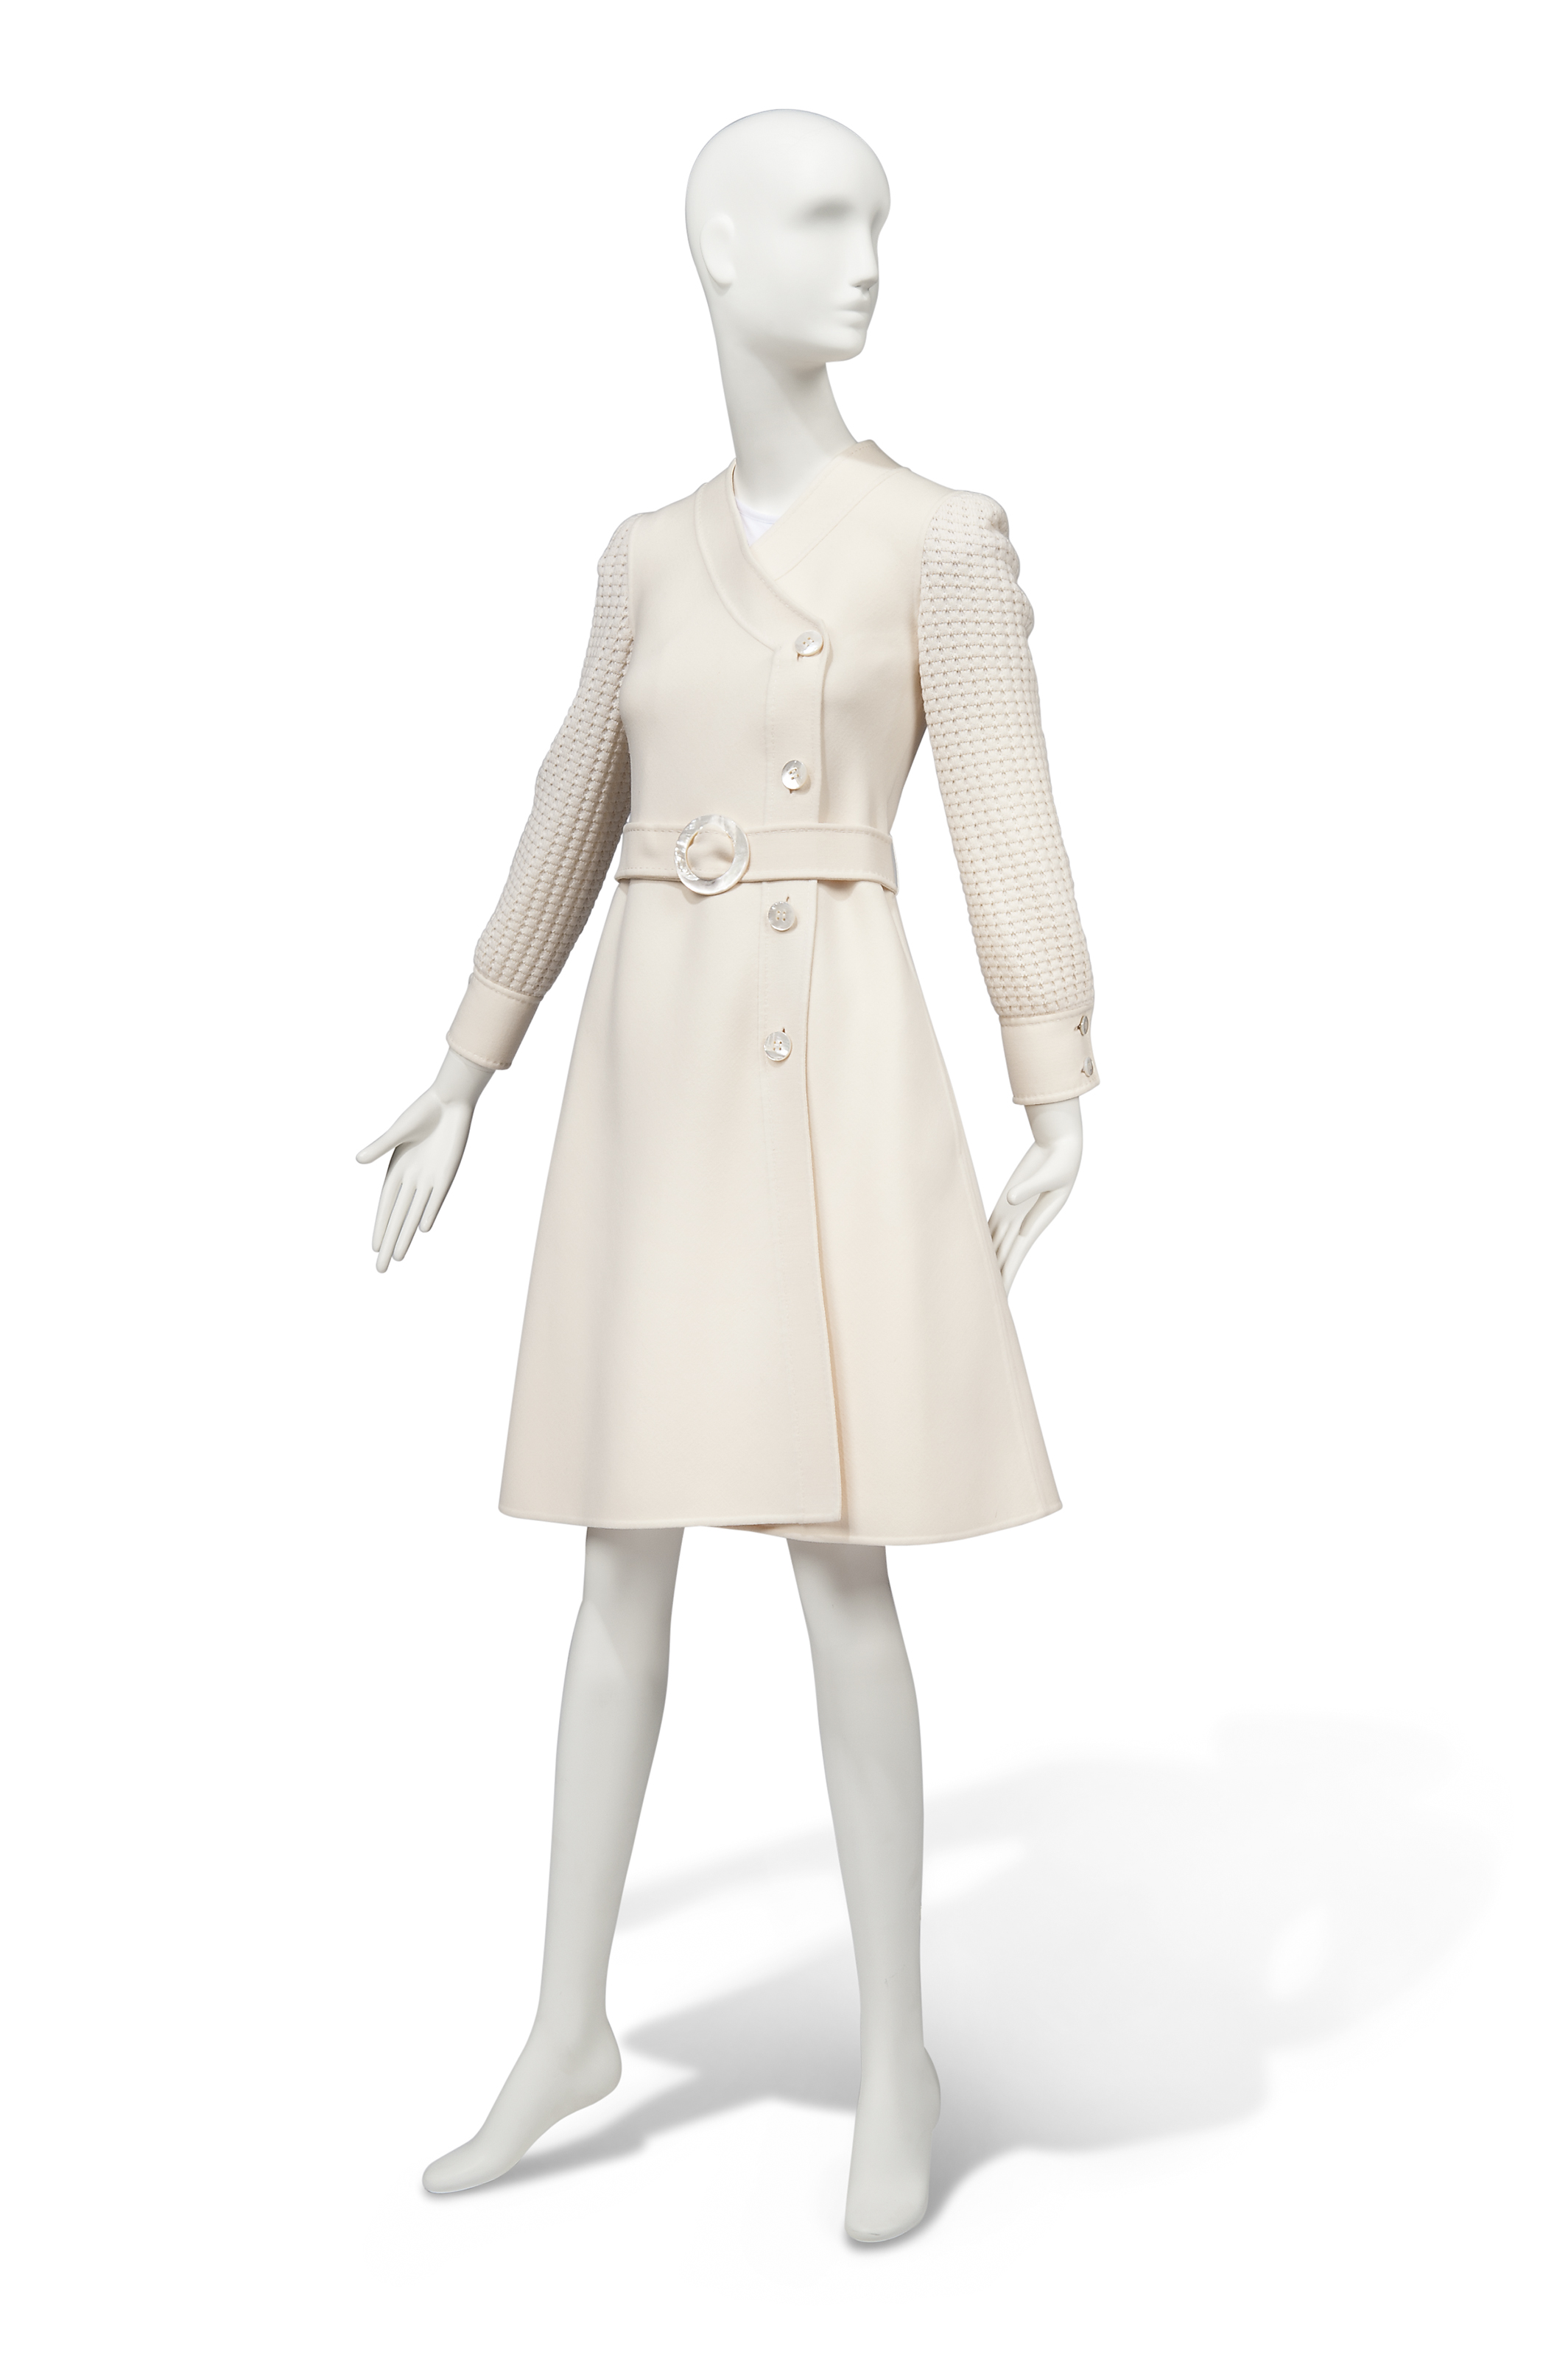 AN IVORY COAT DRESS